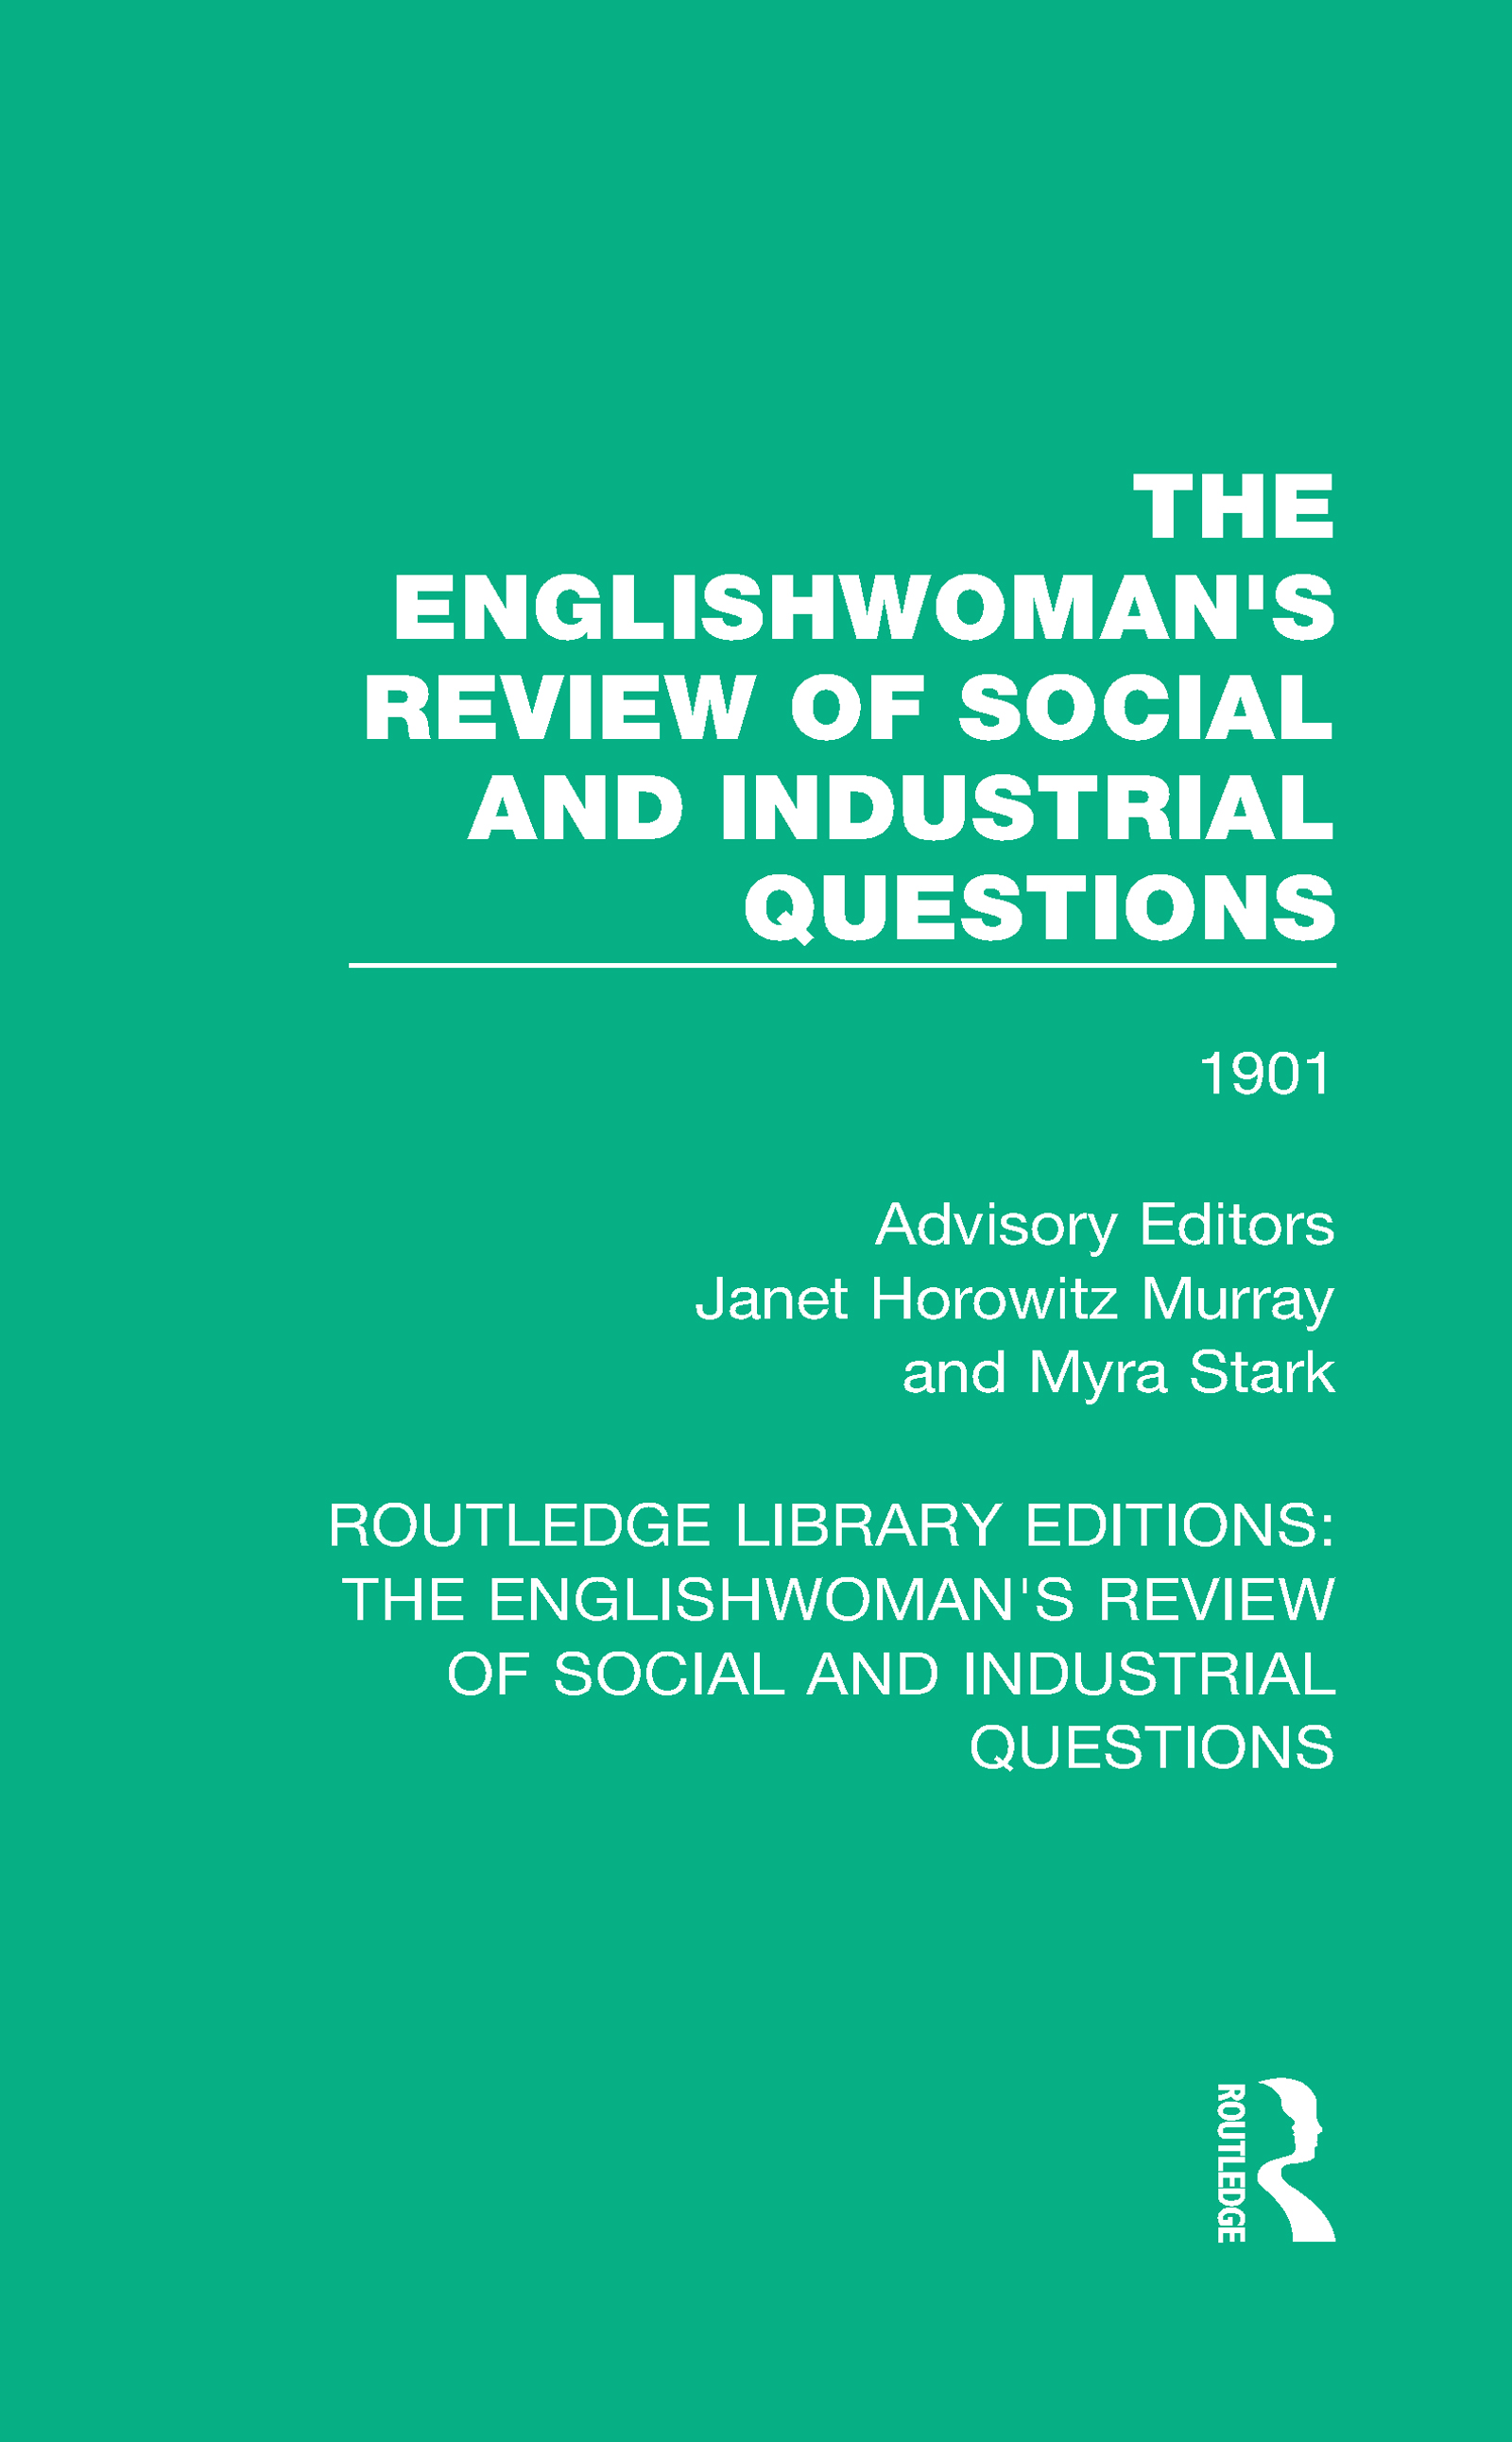 The Englishwoman's Review of Social and Industrial Questions: 1901 book cover